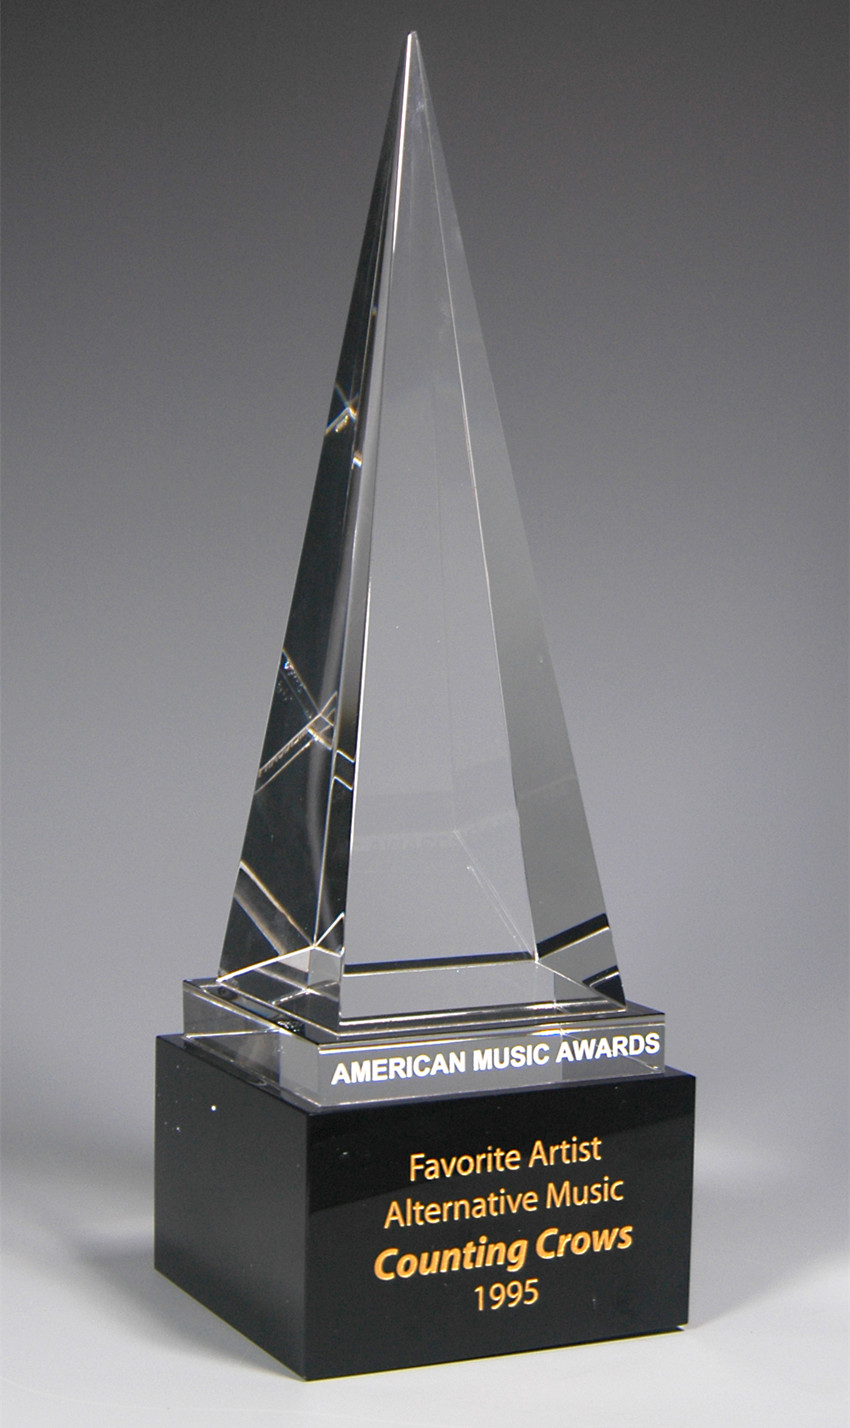 American Music Awards, Crystal AMA Awards, Crystal Awards сыйлығы